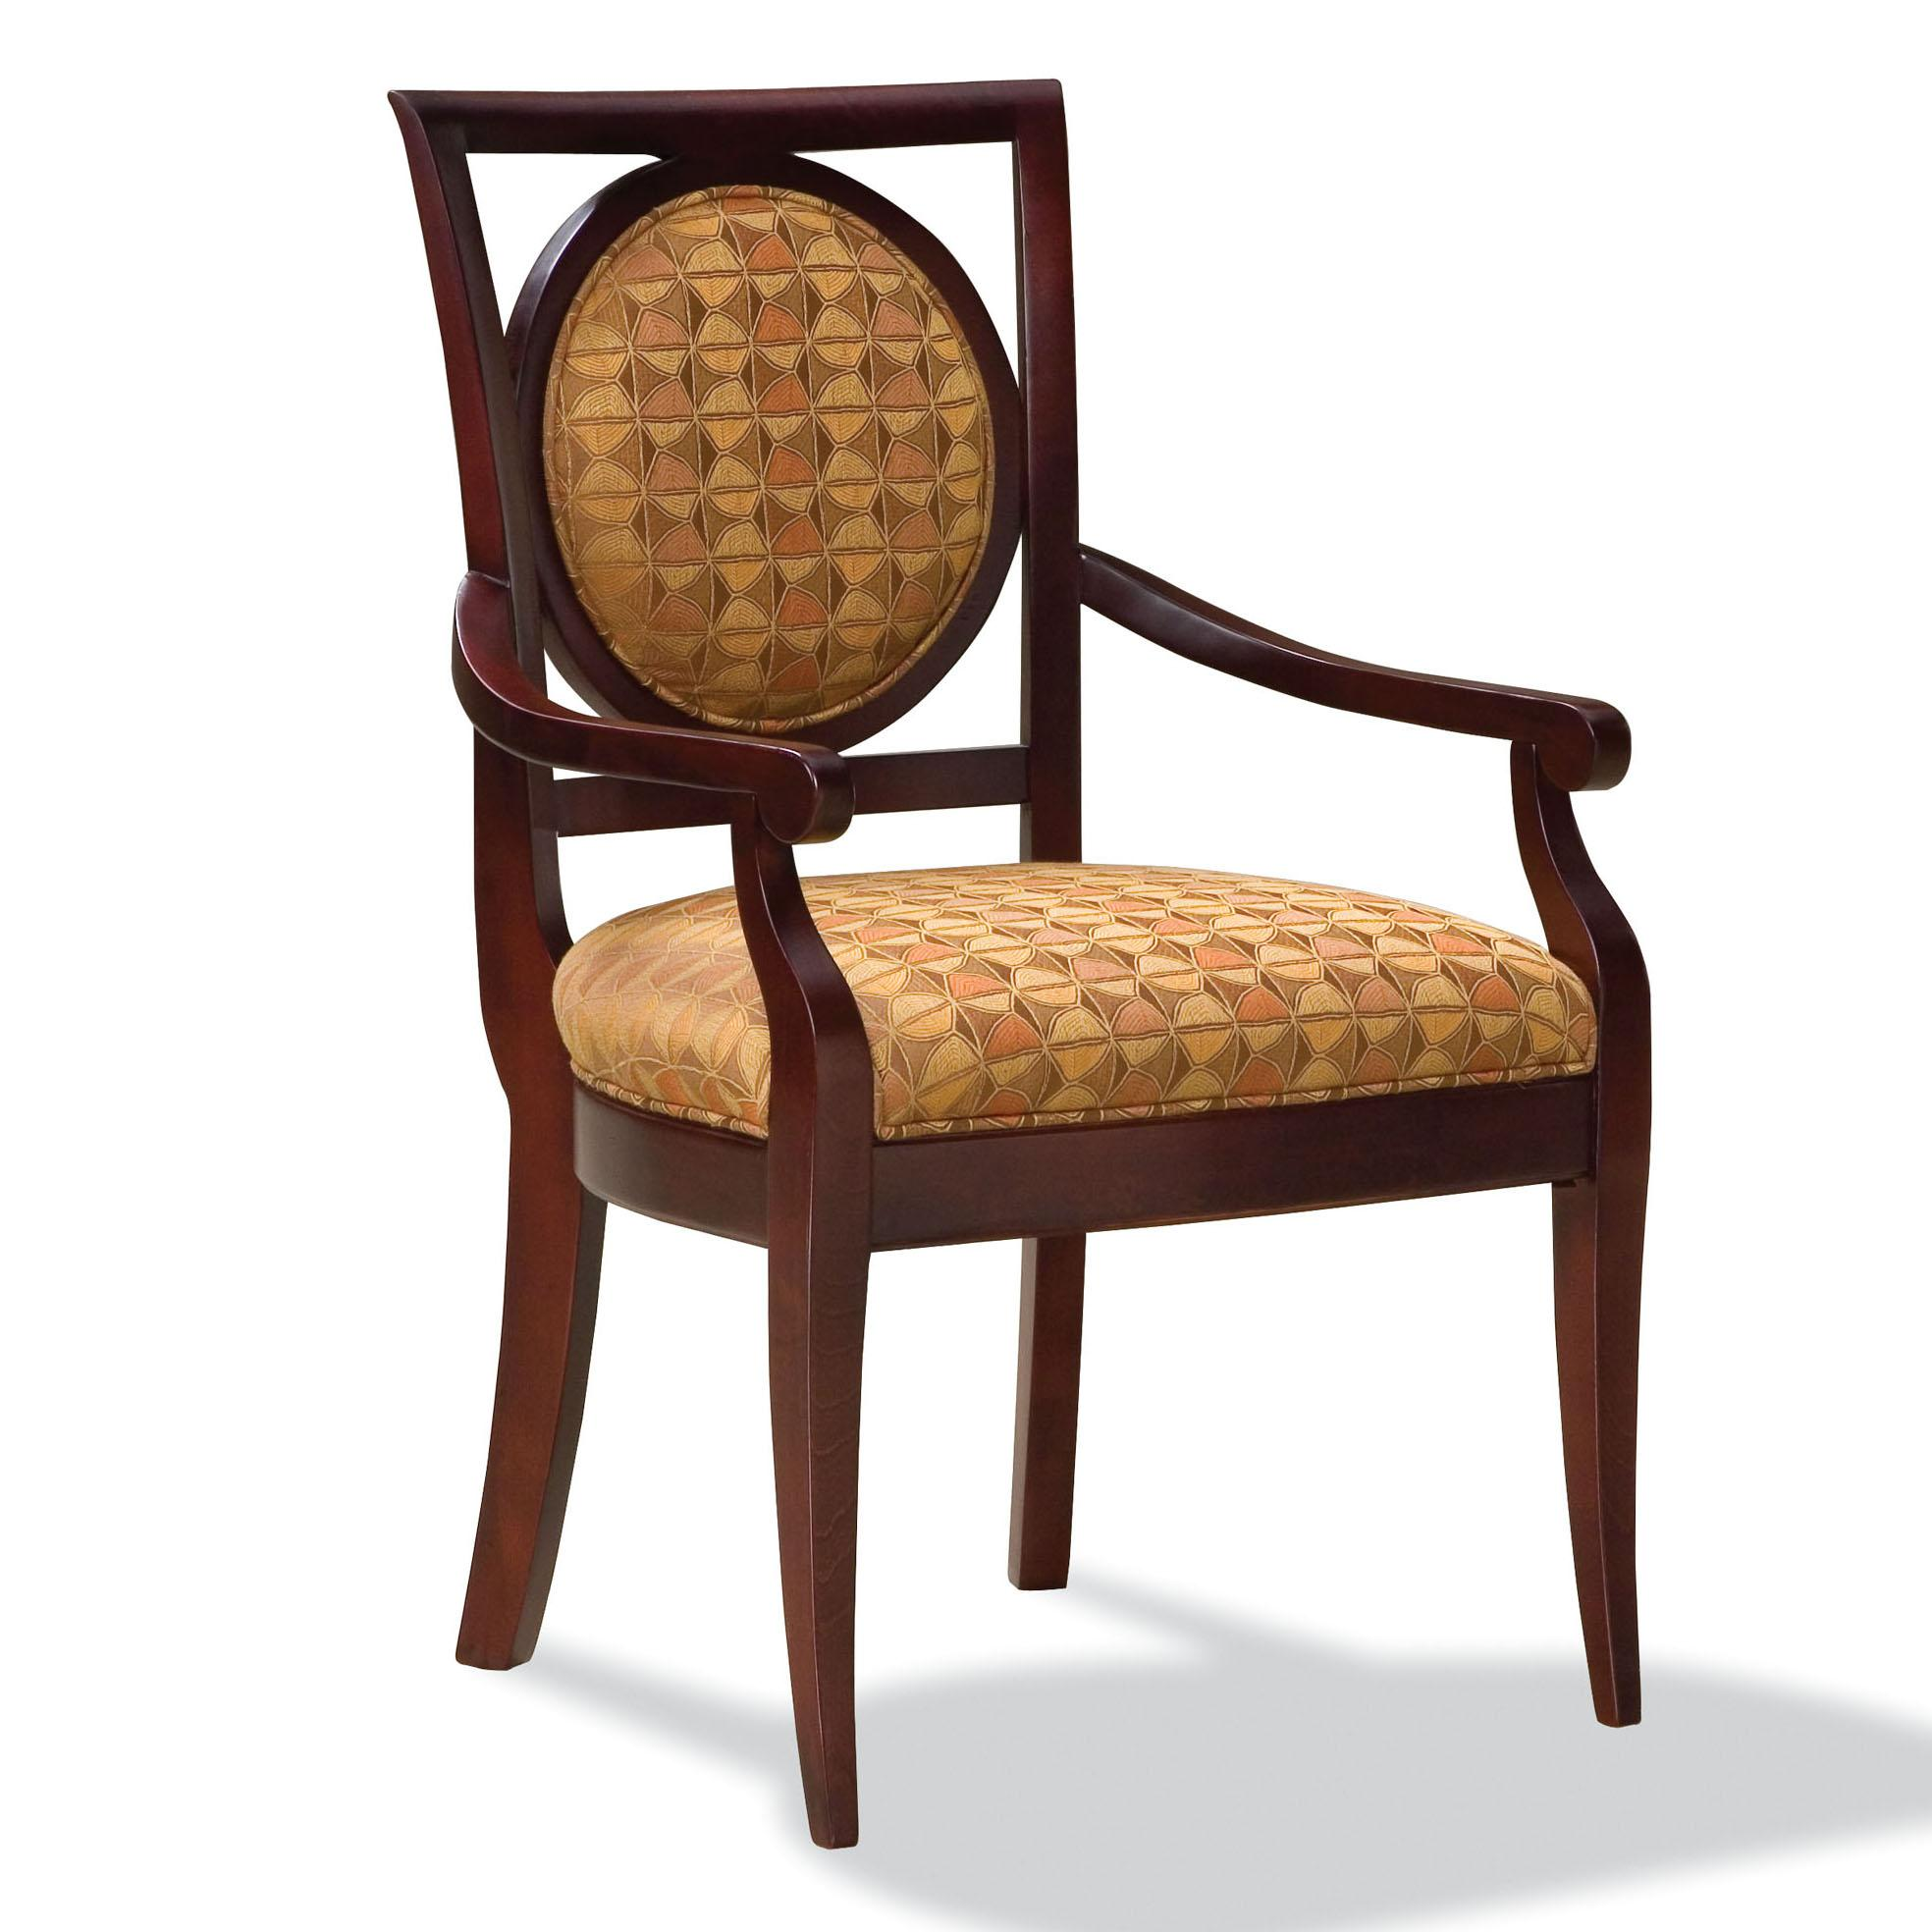 Fairfield Chairs Exposed Wood Arm Chair - Item Number: 5414-04